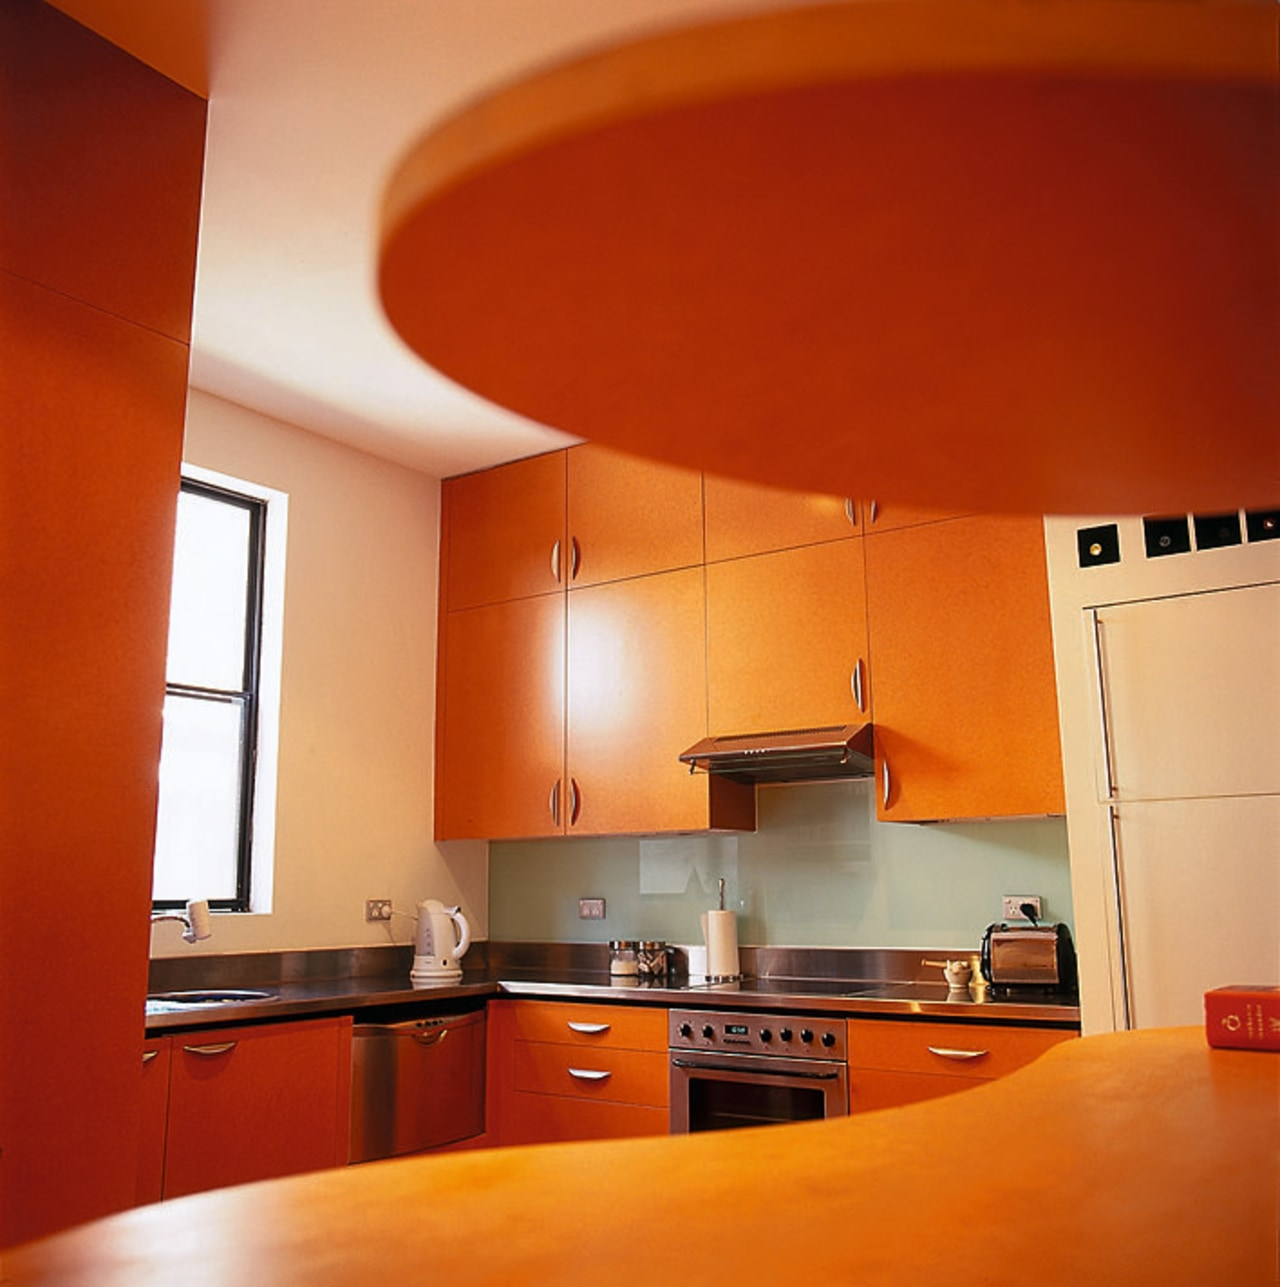 View of the modern kitchen architecture, cabinetry, ceiling, countertop, floor, flooring, hardwood, interior design, kitchen, light fixture, orange, room, table, wall, red, brown